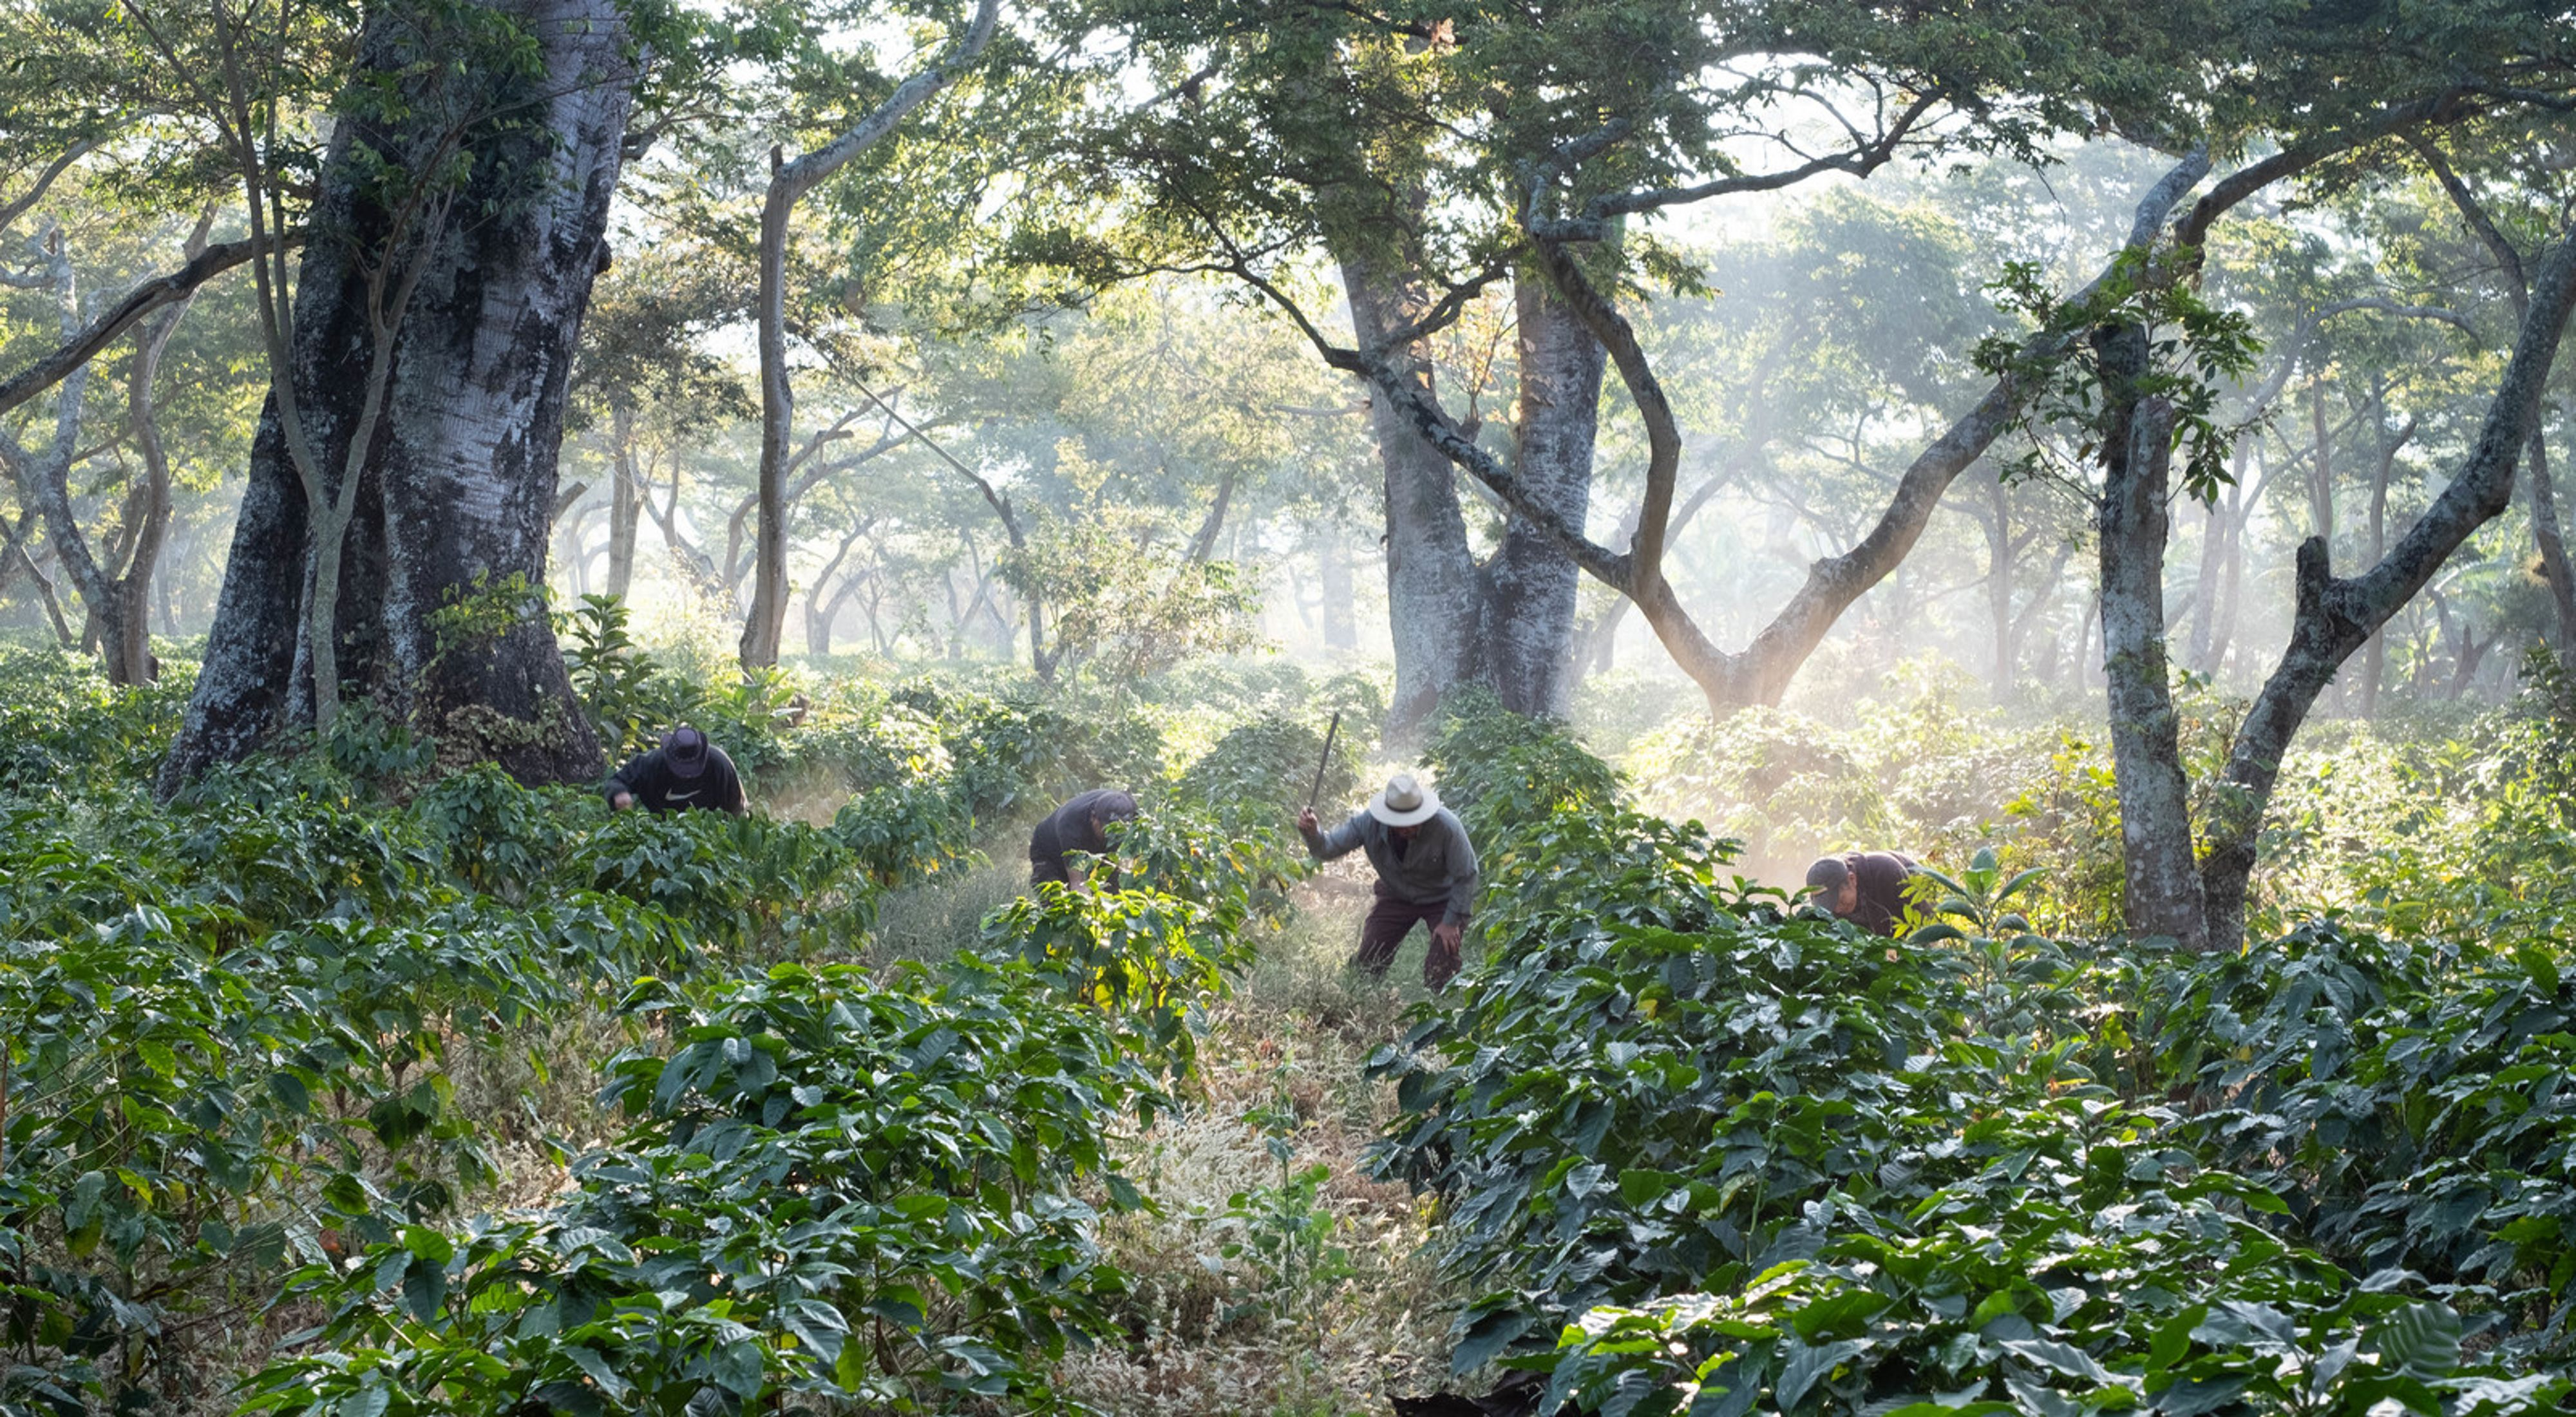 Workers clear undergrowth with machetes in shade-grown coffee crops on San Agustín Las Minas coffee plantation.